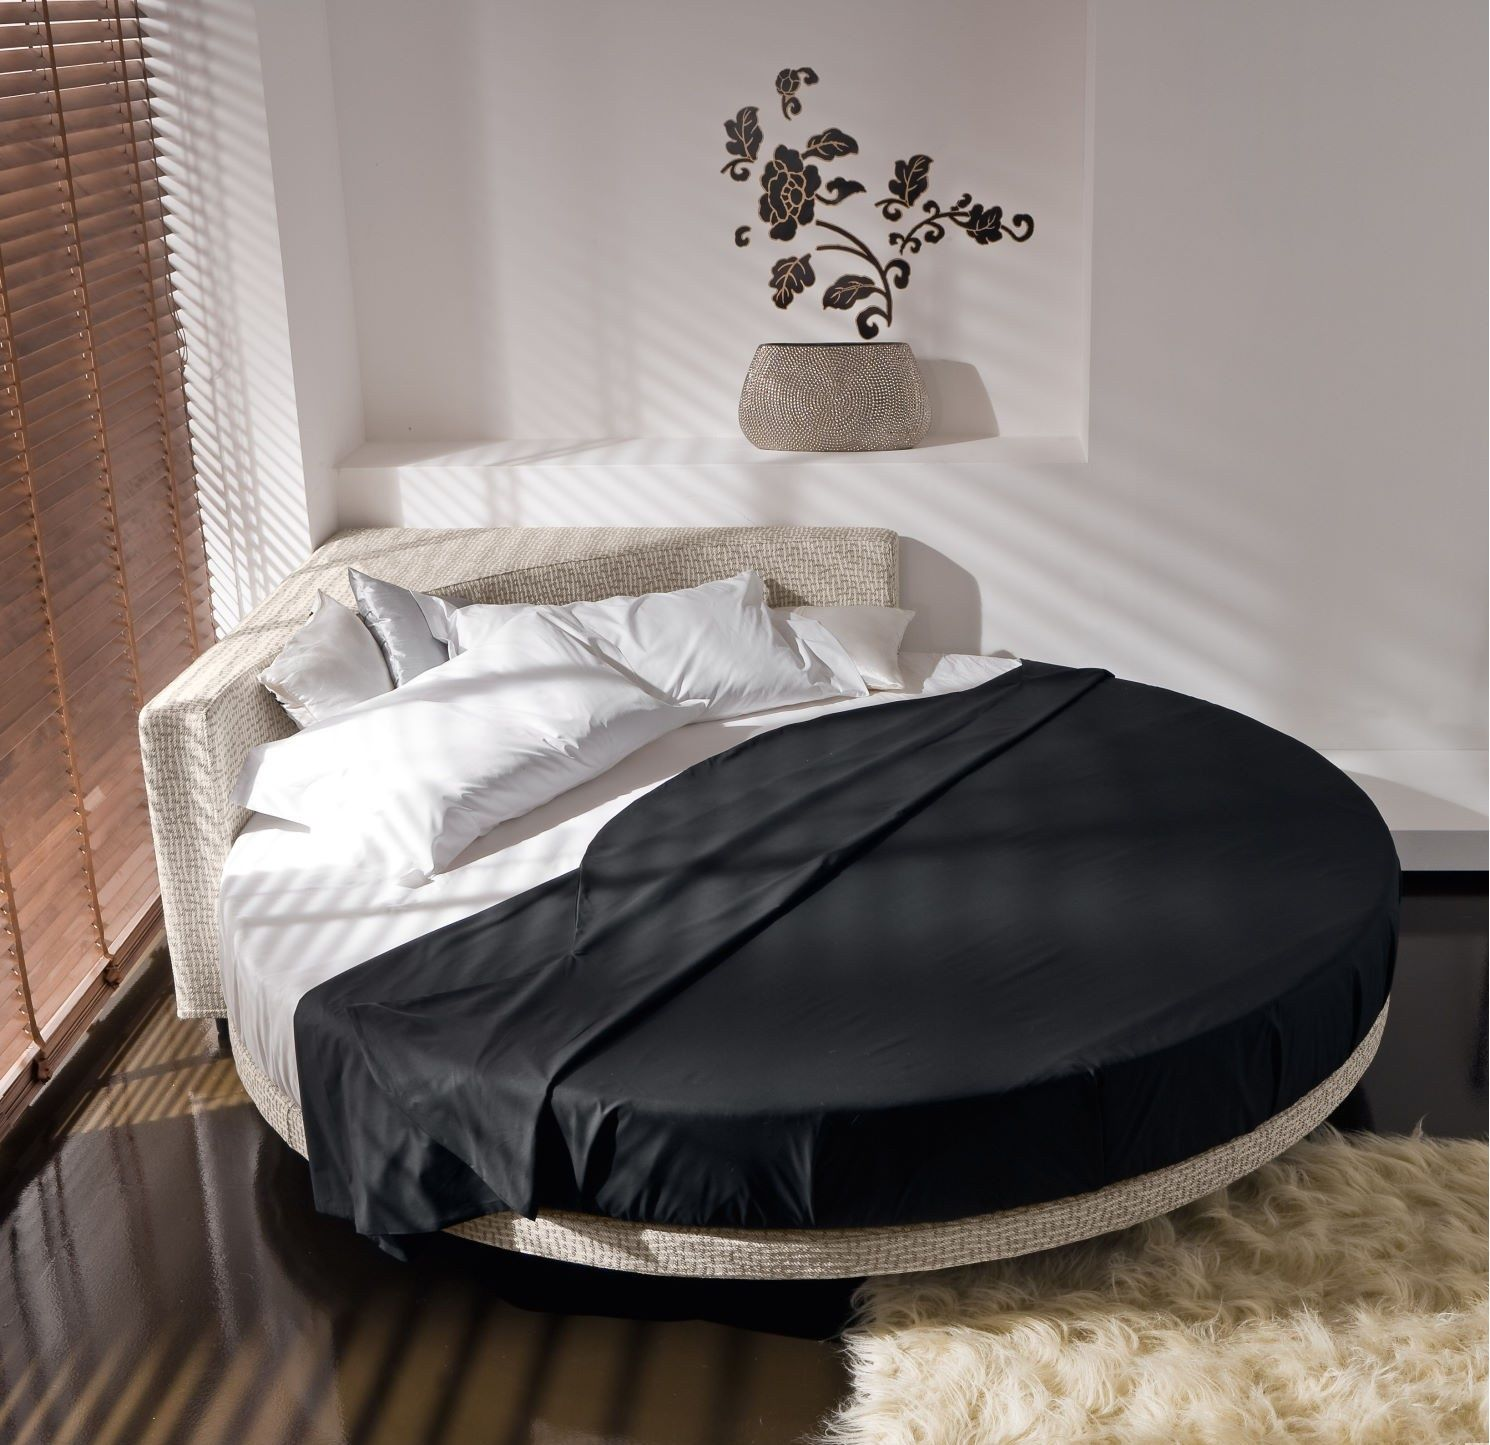 Ankita Kumari on Round beds, Bed design, Circle bed